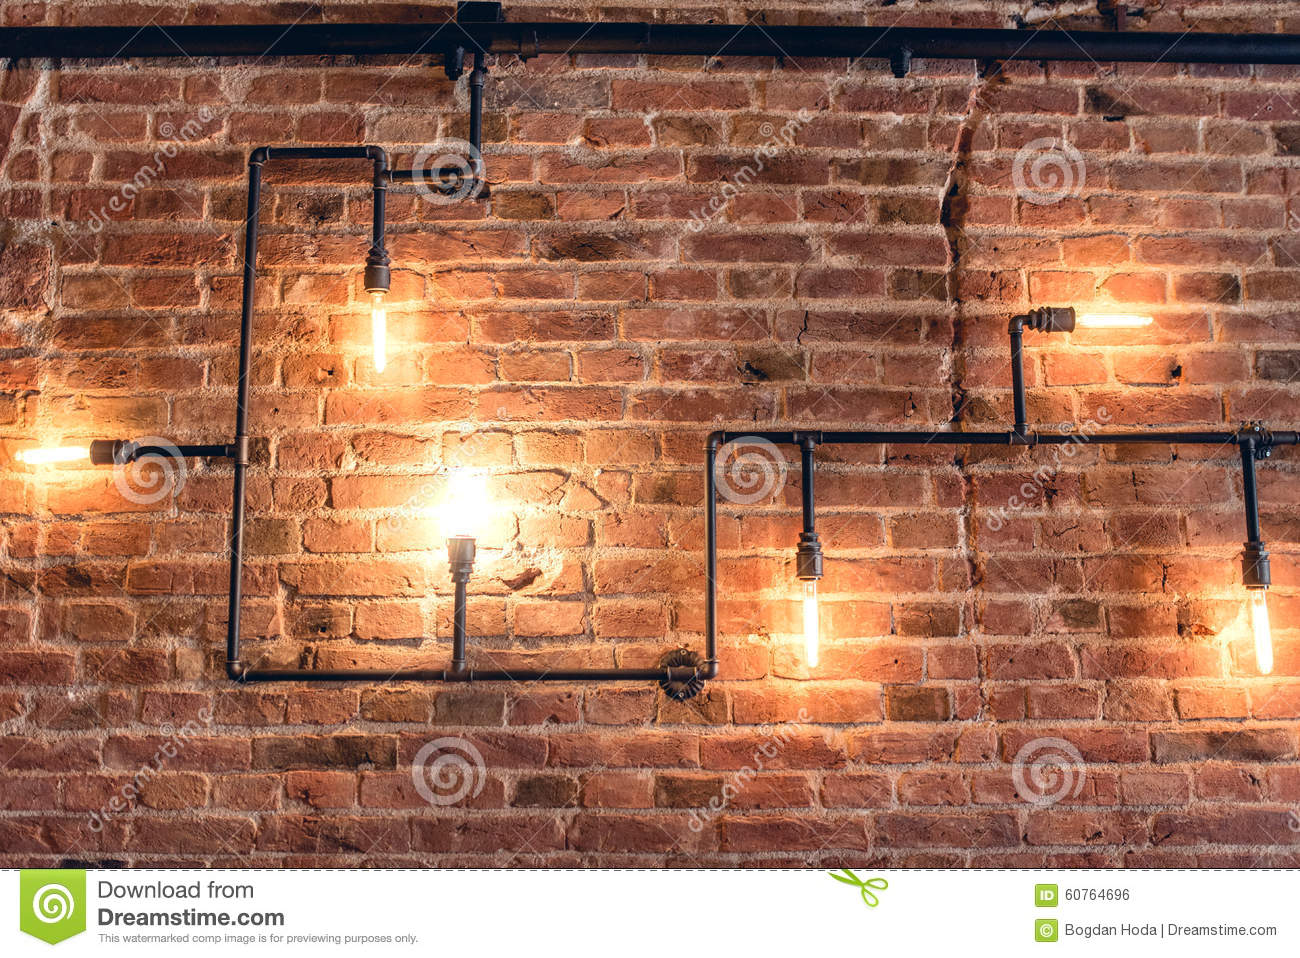 Design Of Vintage Wall Rustic Design Brick Wall With Light Bulbs And Pipes Low Lit Bar